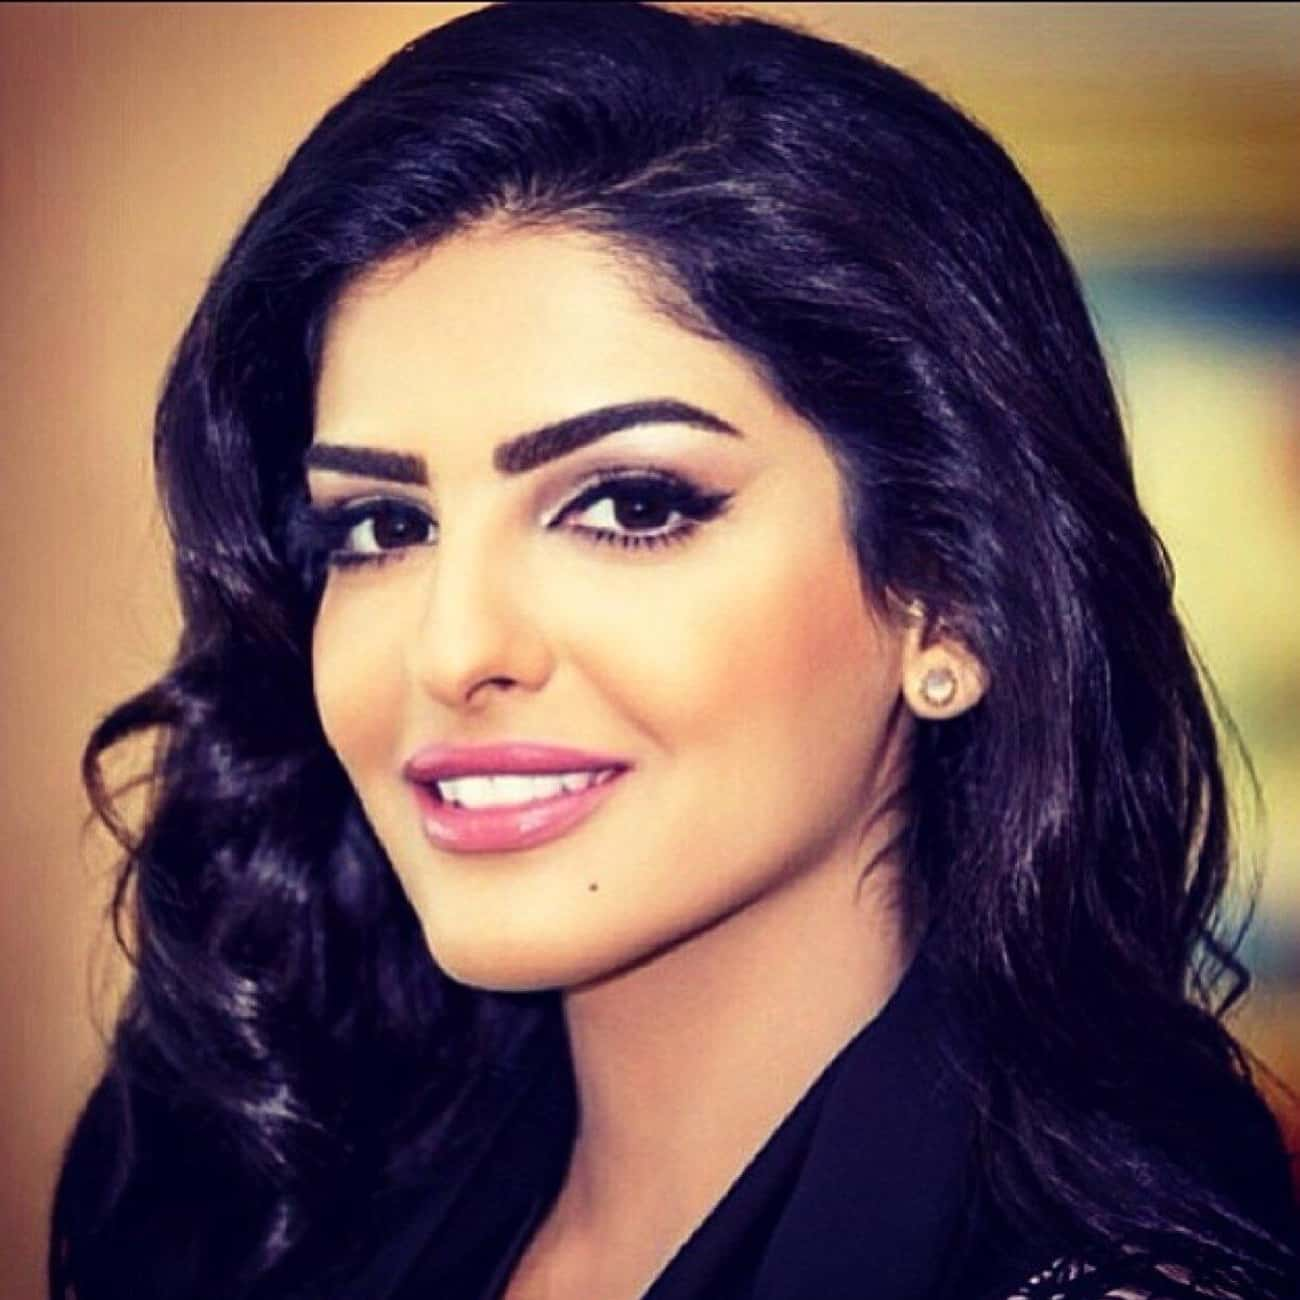 Princess Ameerah Al Taweel is listed (or ranked) 3 on the list The Hottest Muslim Women Under 40